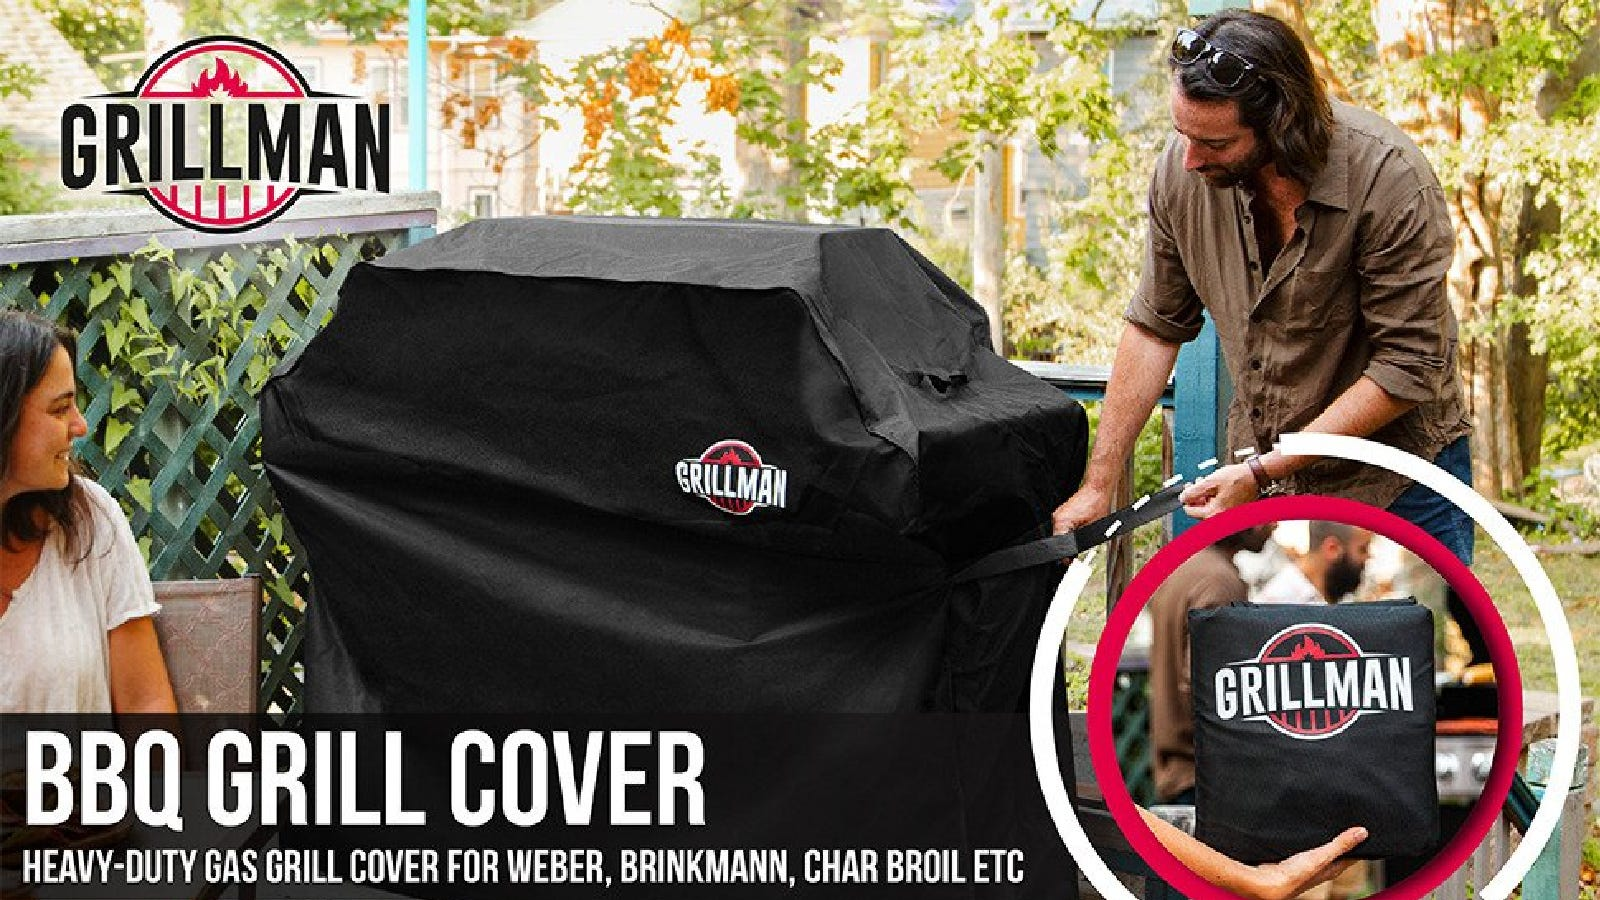 A man placing a Grillman grill cover over his grill, and a smiling woman watching near by.